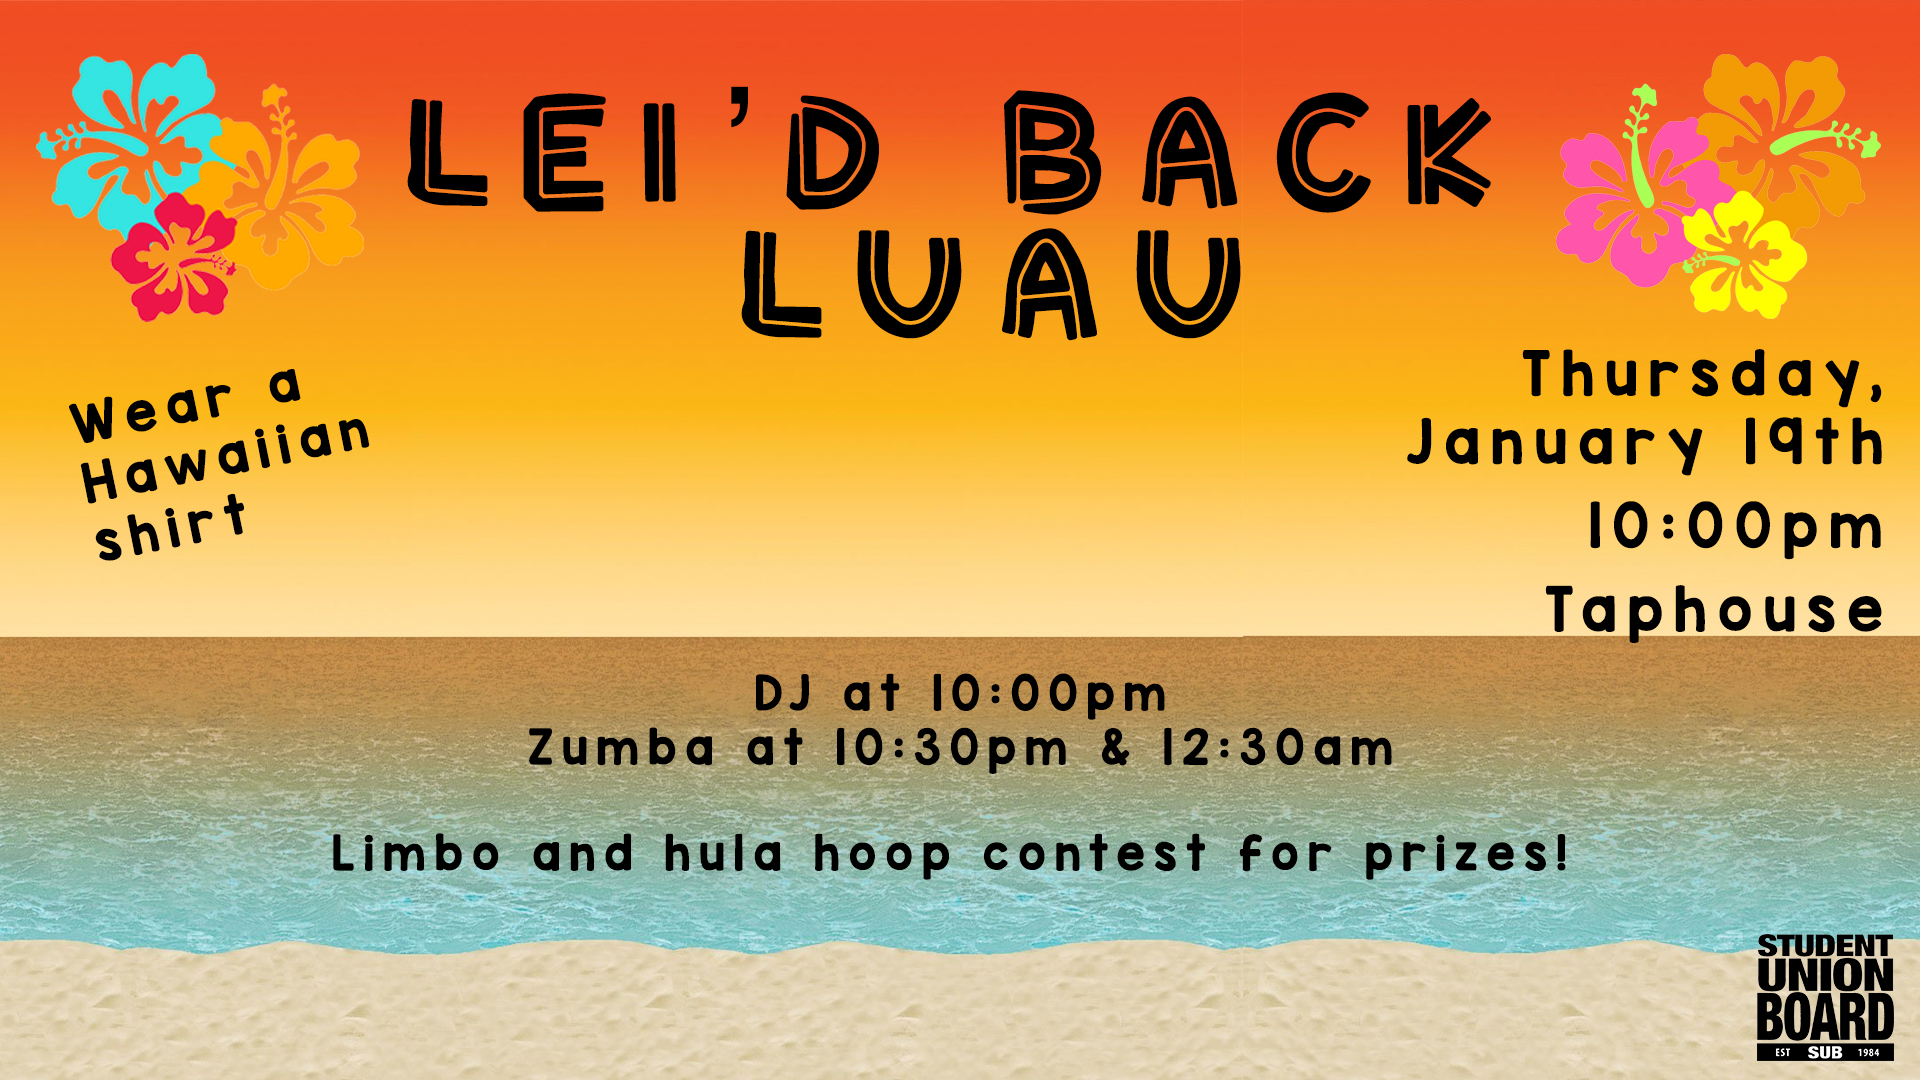 Come enjoy the luau-themed fun on January 19th in Taphouse!